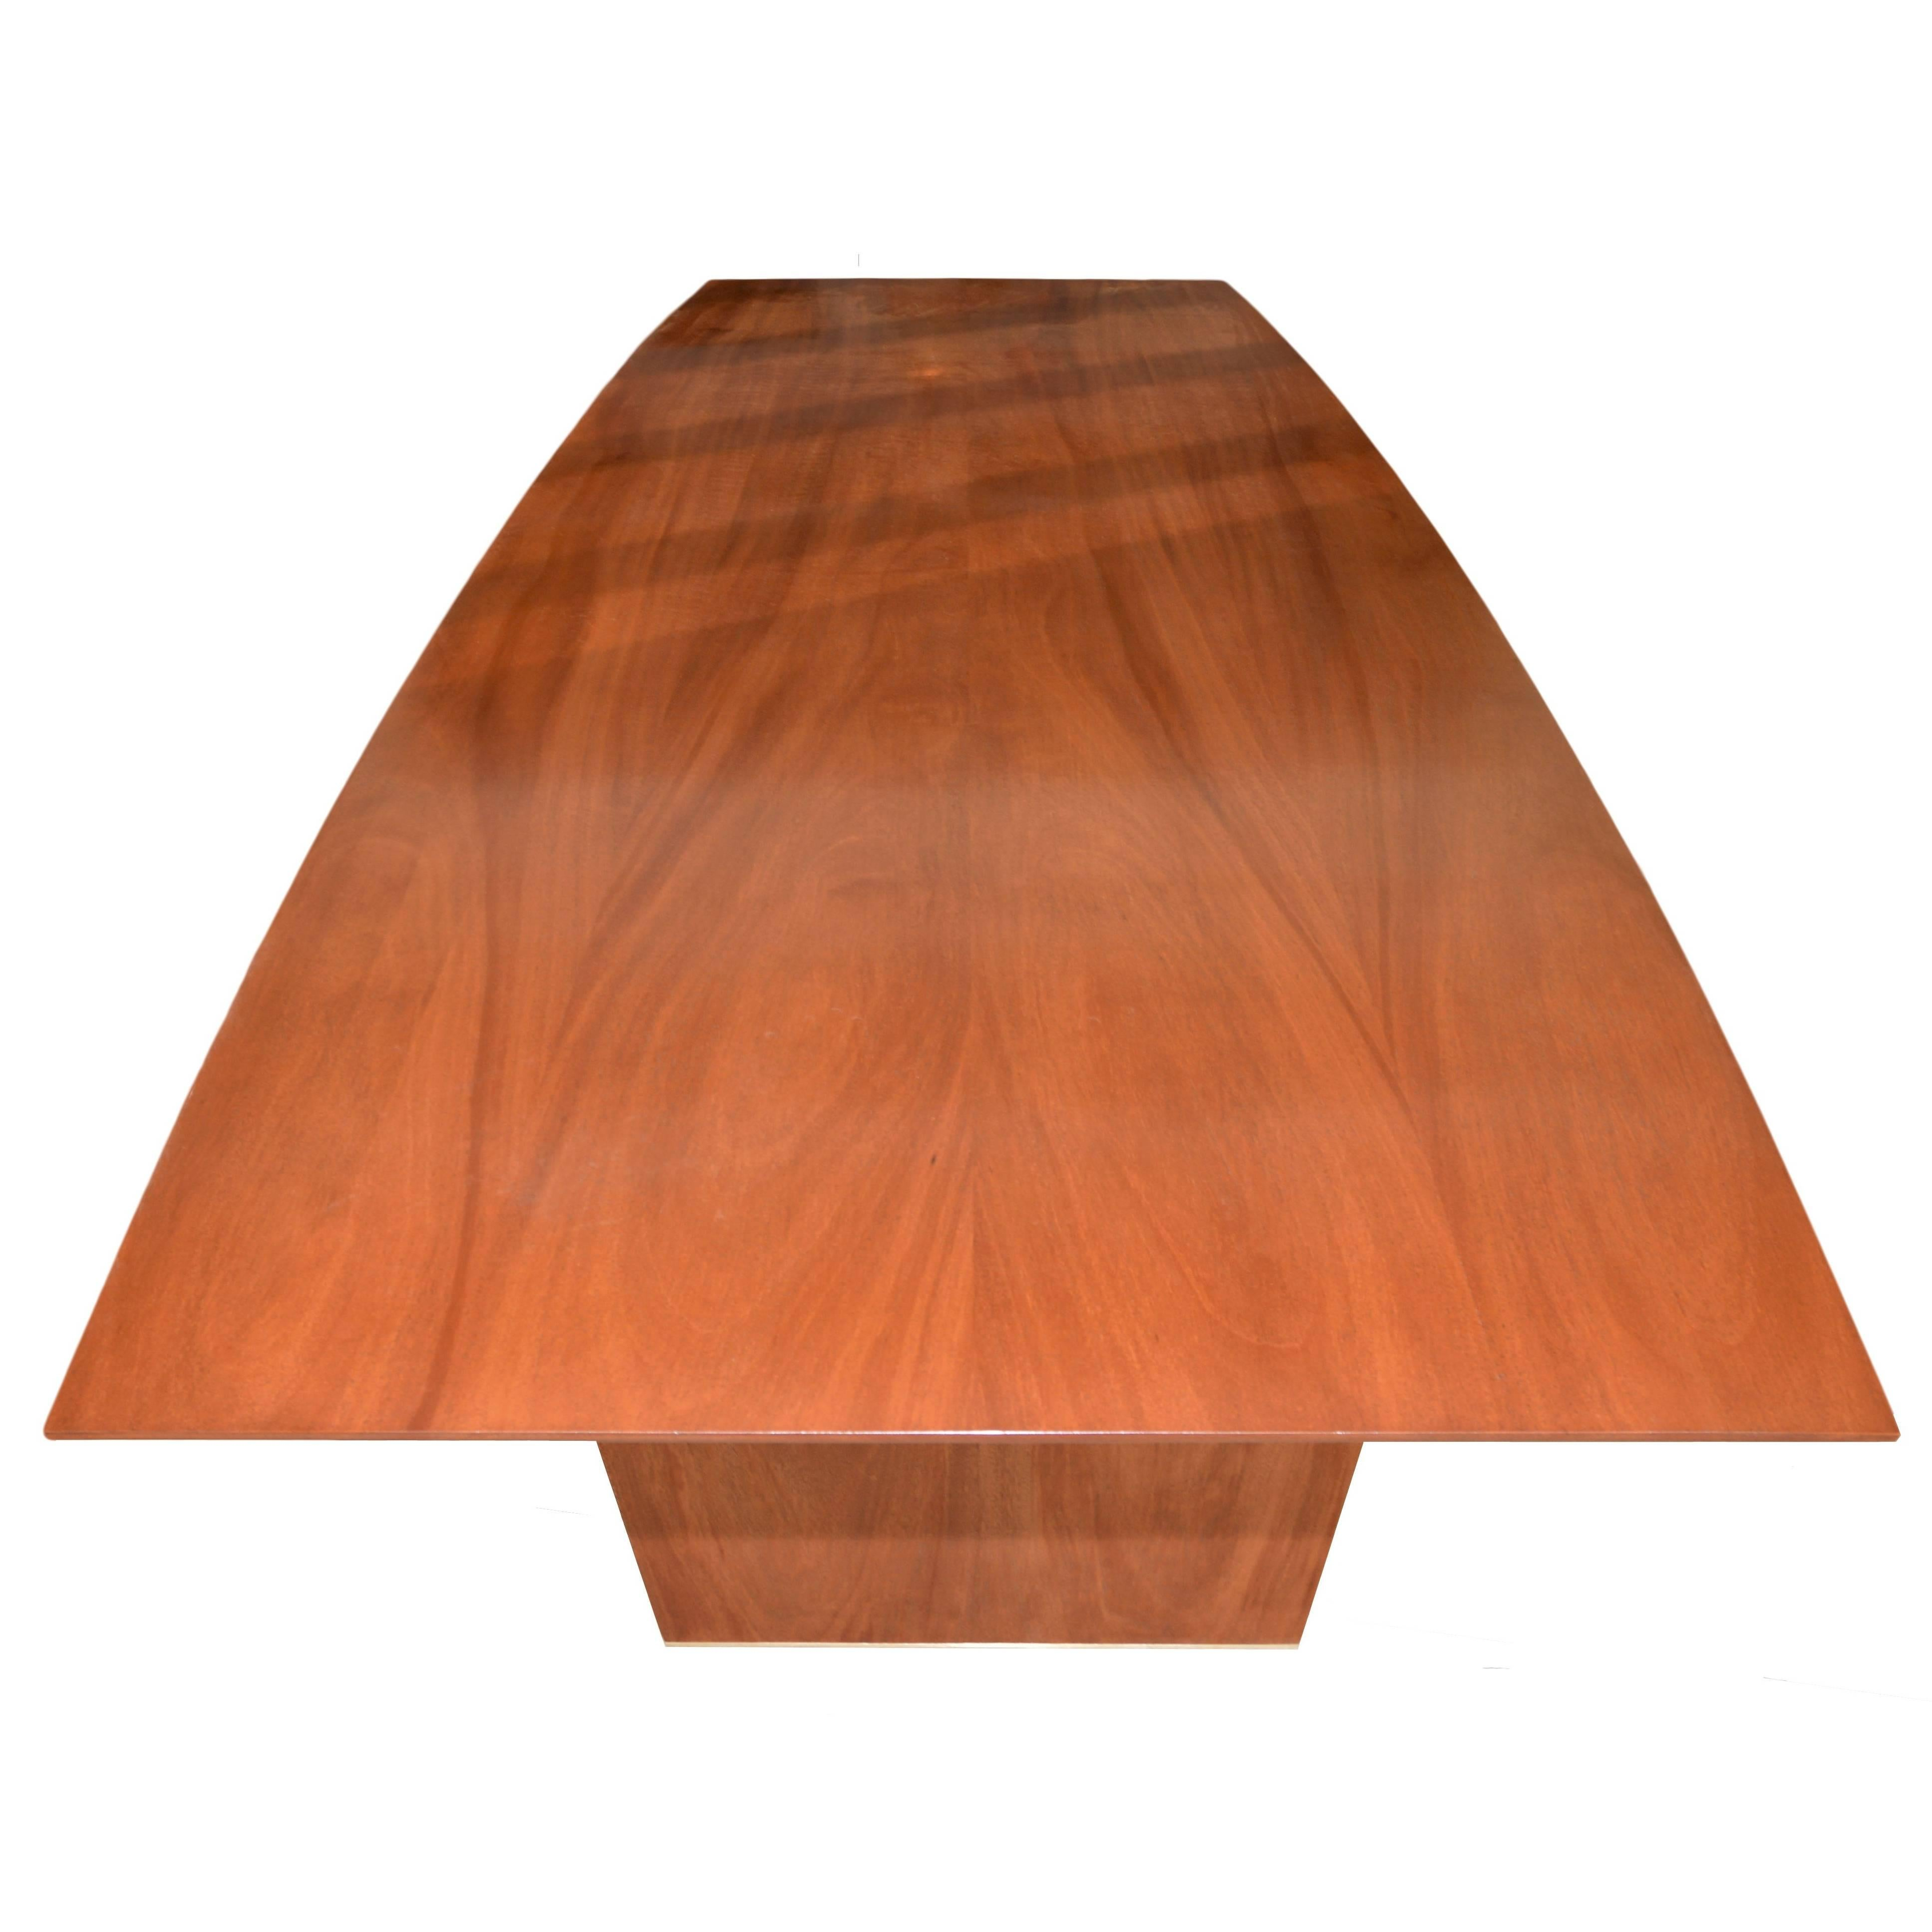 Custom Dining Table In Solid Bookmatched Mahogany